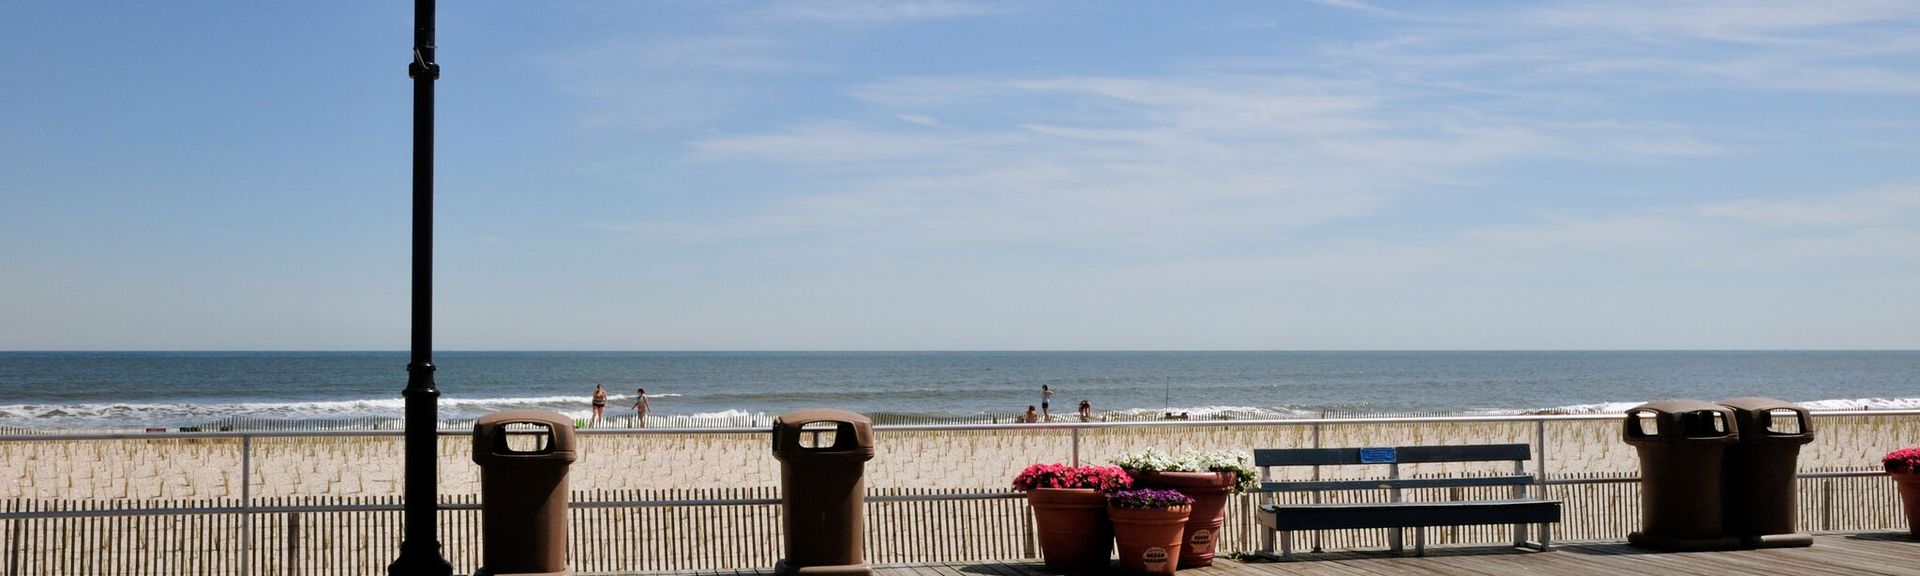 Ocean City, New Jersey, USA